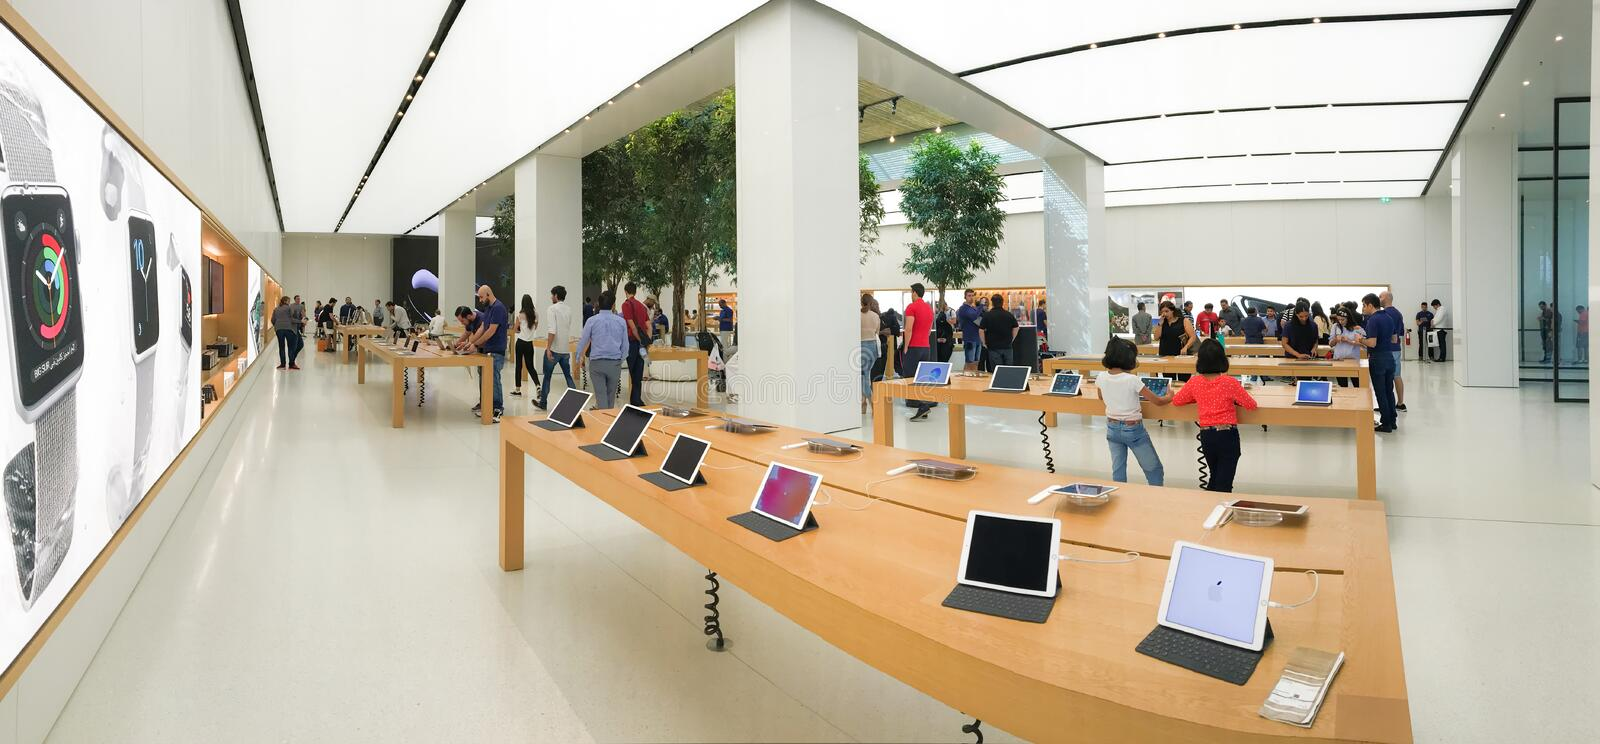 Apple store of the Mall of Emirates royalty free stock photography